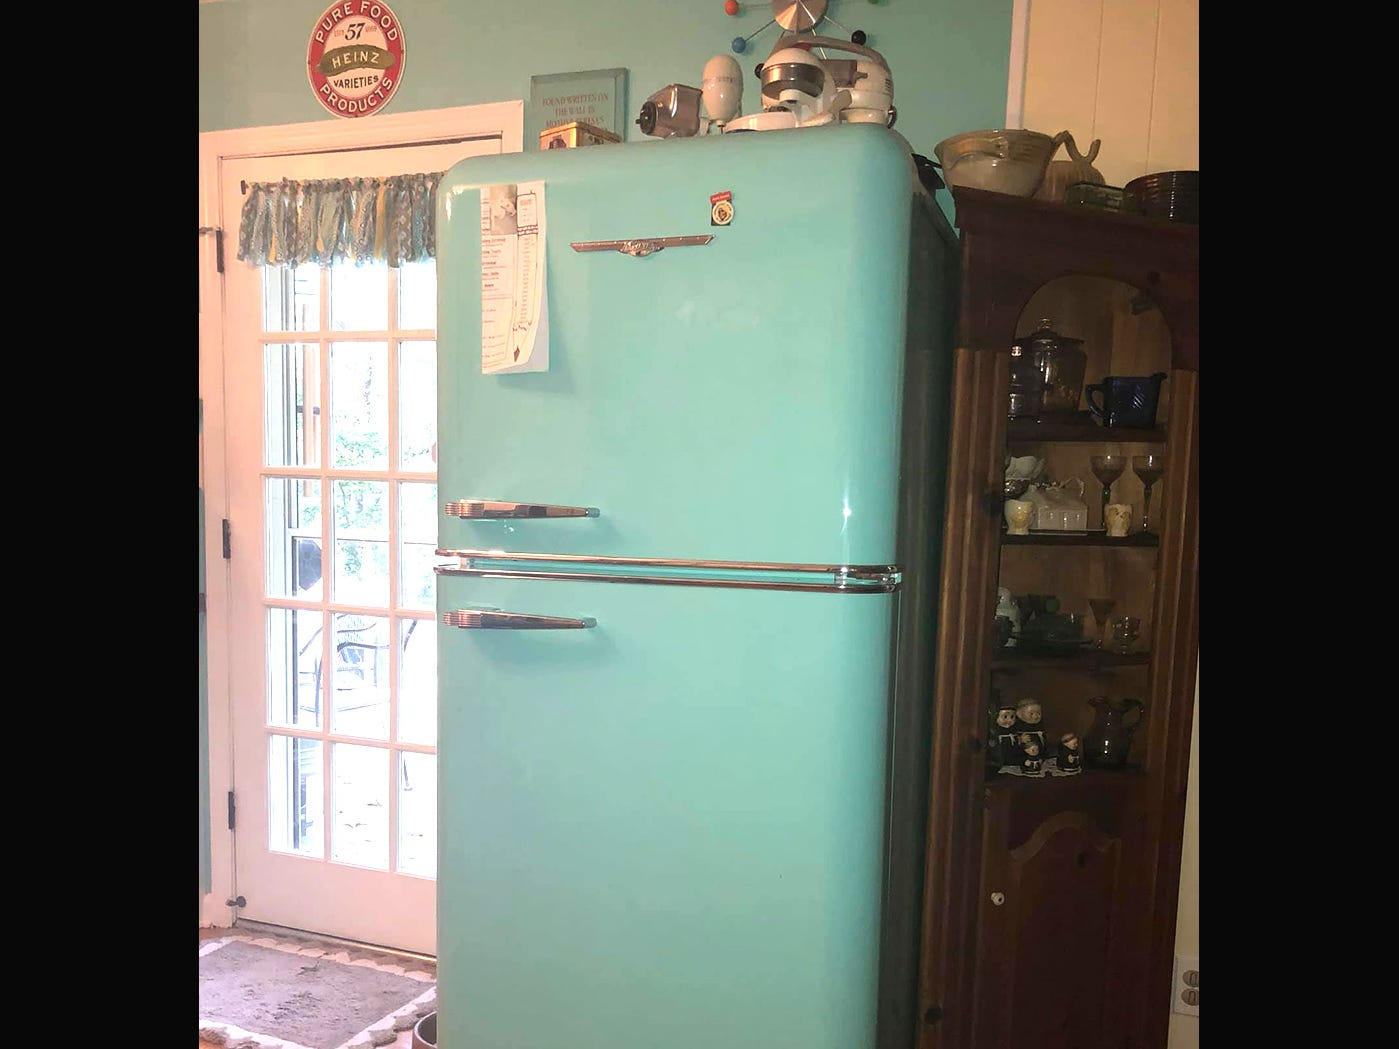 The new 1952 model Robin's Egg Blue refrigerator was an essential component of the retro kitchen.